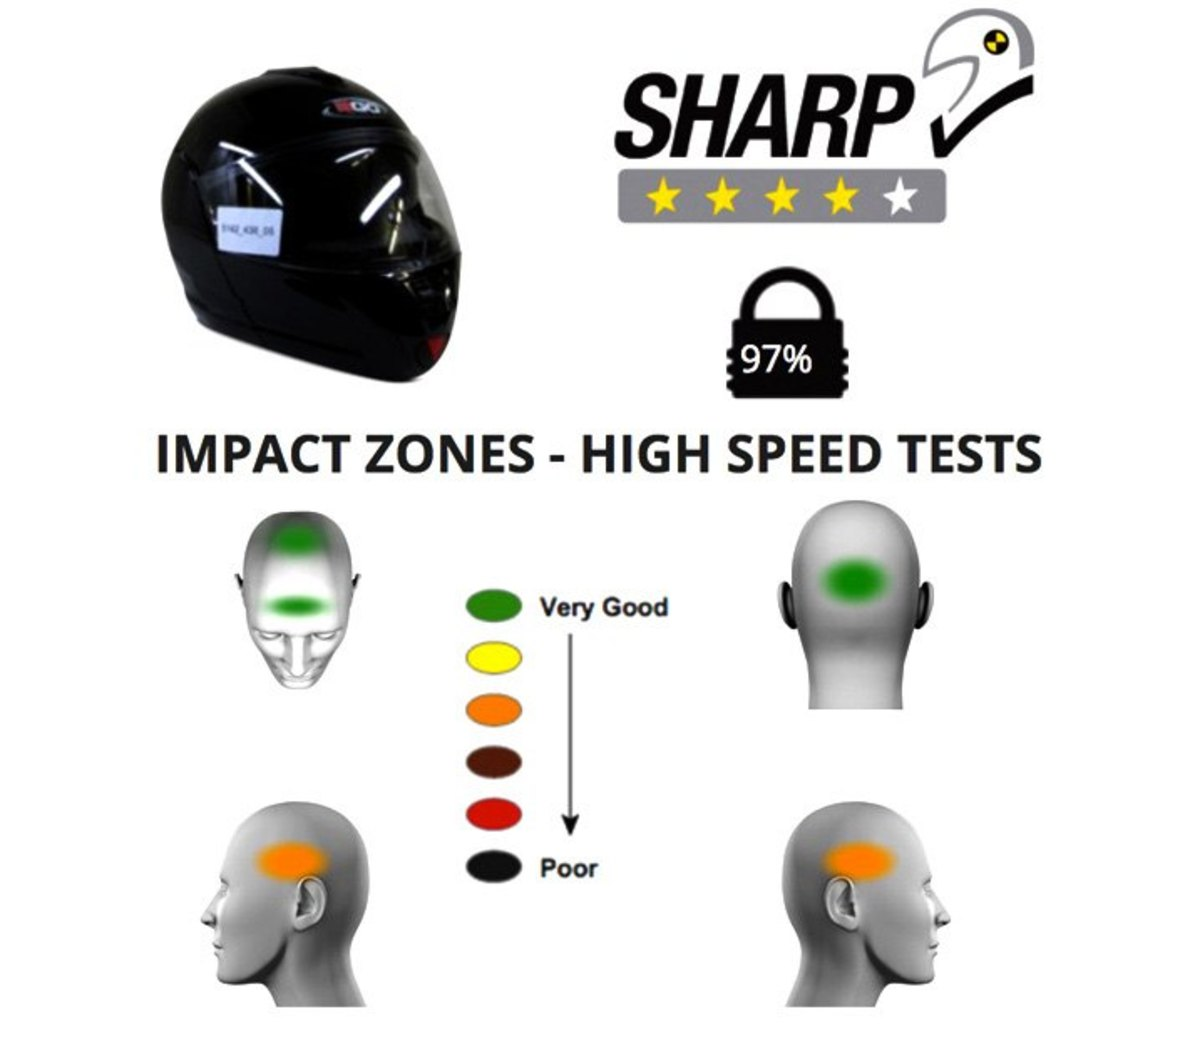 SHARP tests use color-coded ratings to reference specific areas on the helmet that were tested.